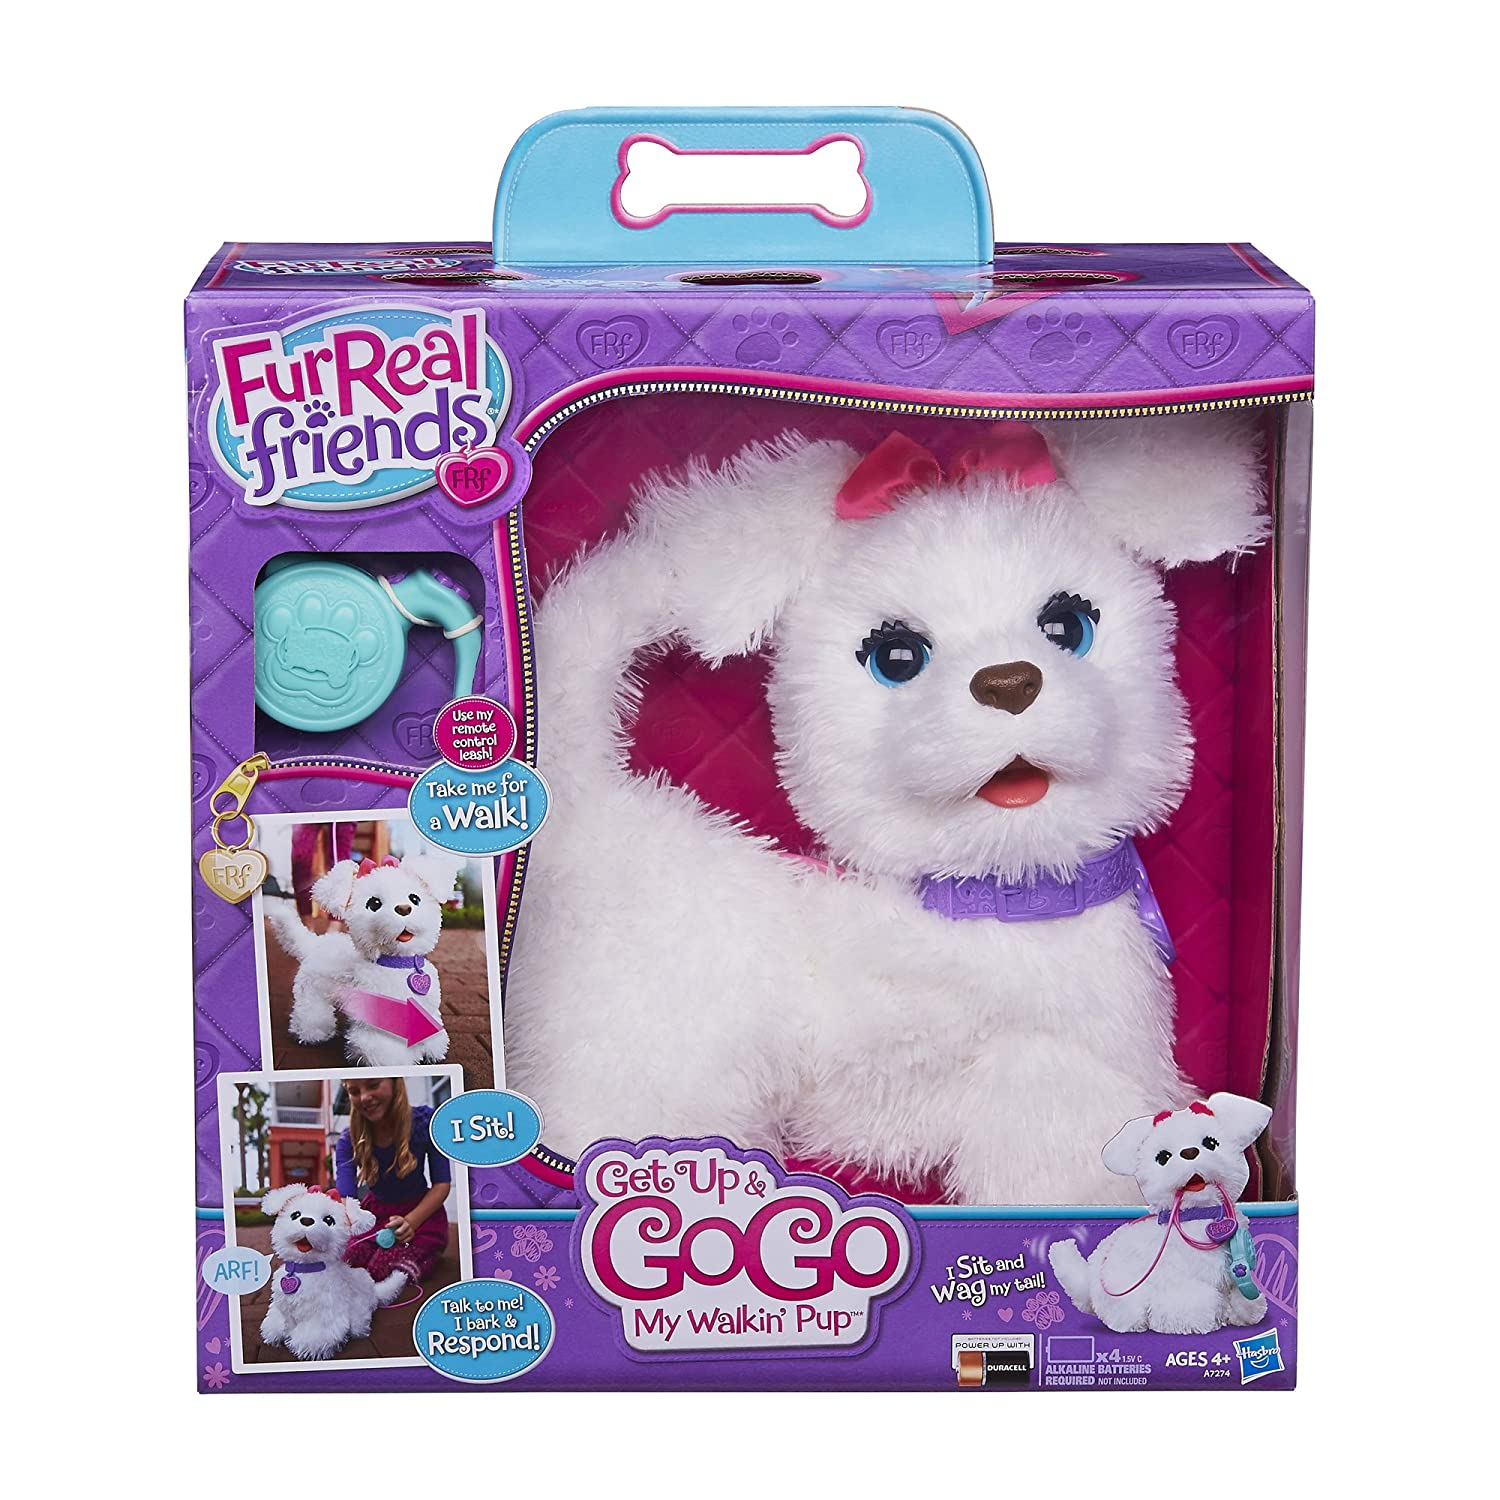 Furreal friends baby snow leopard flurry review robotic dog toys - Amazon Com Furreal Friends Get Up Gogo My Walkin Pup Pet Toys Games